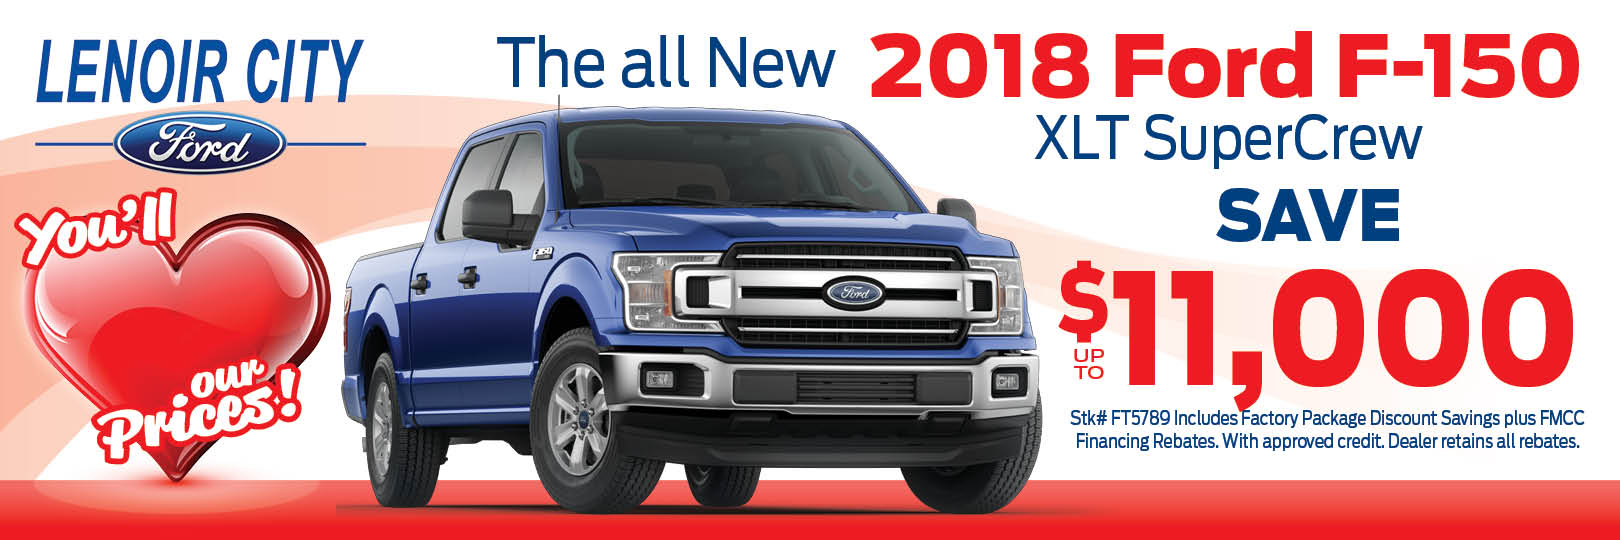 Ford Dealers In Knoxville Best Image FiccioNet - Knoxville ford dealers